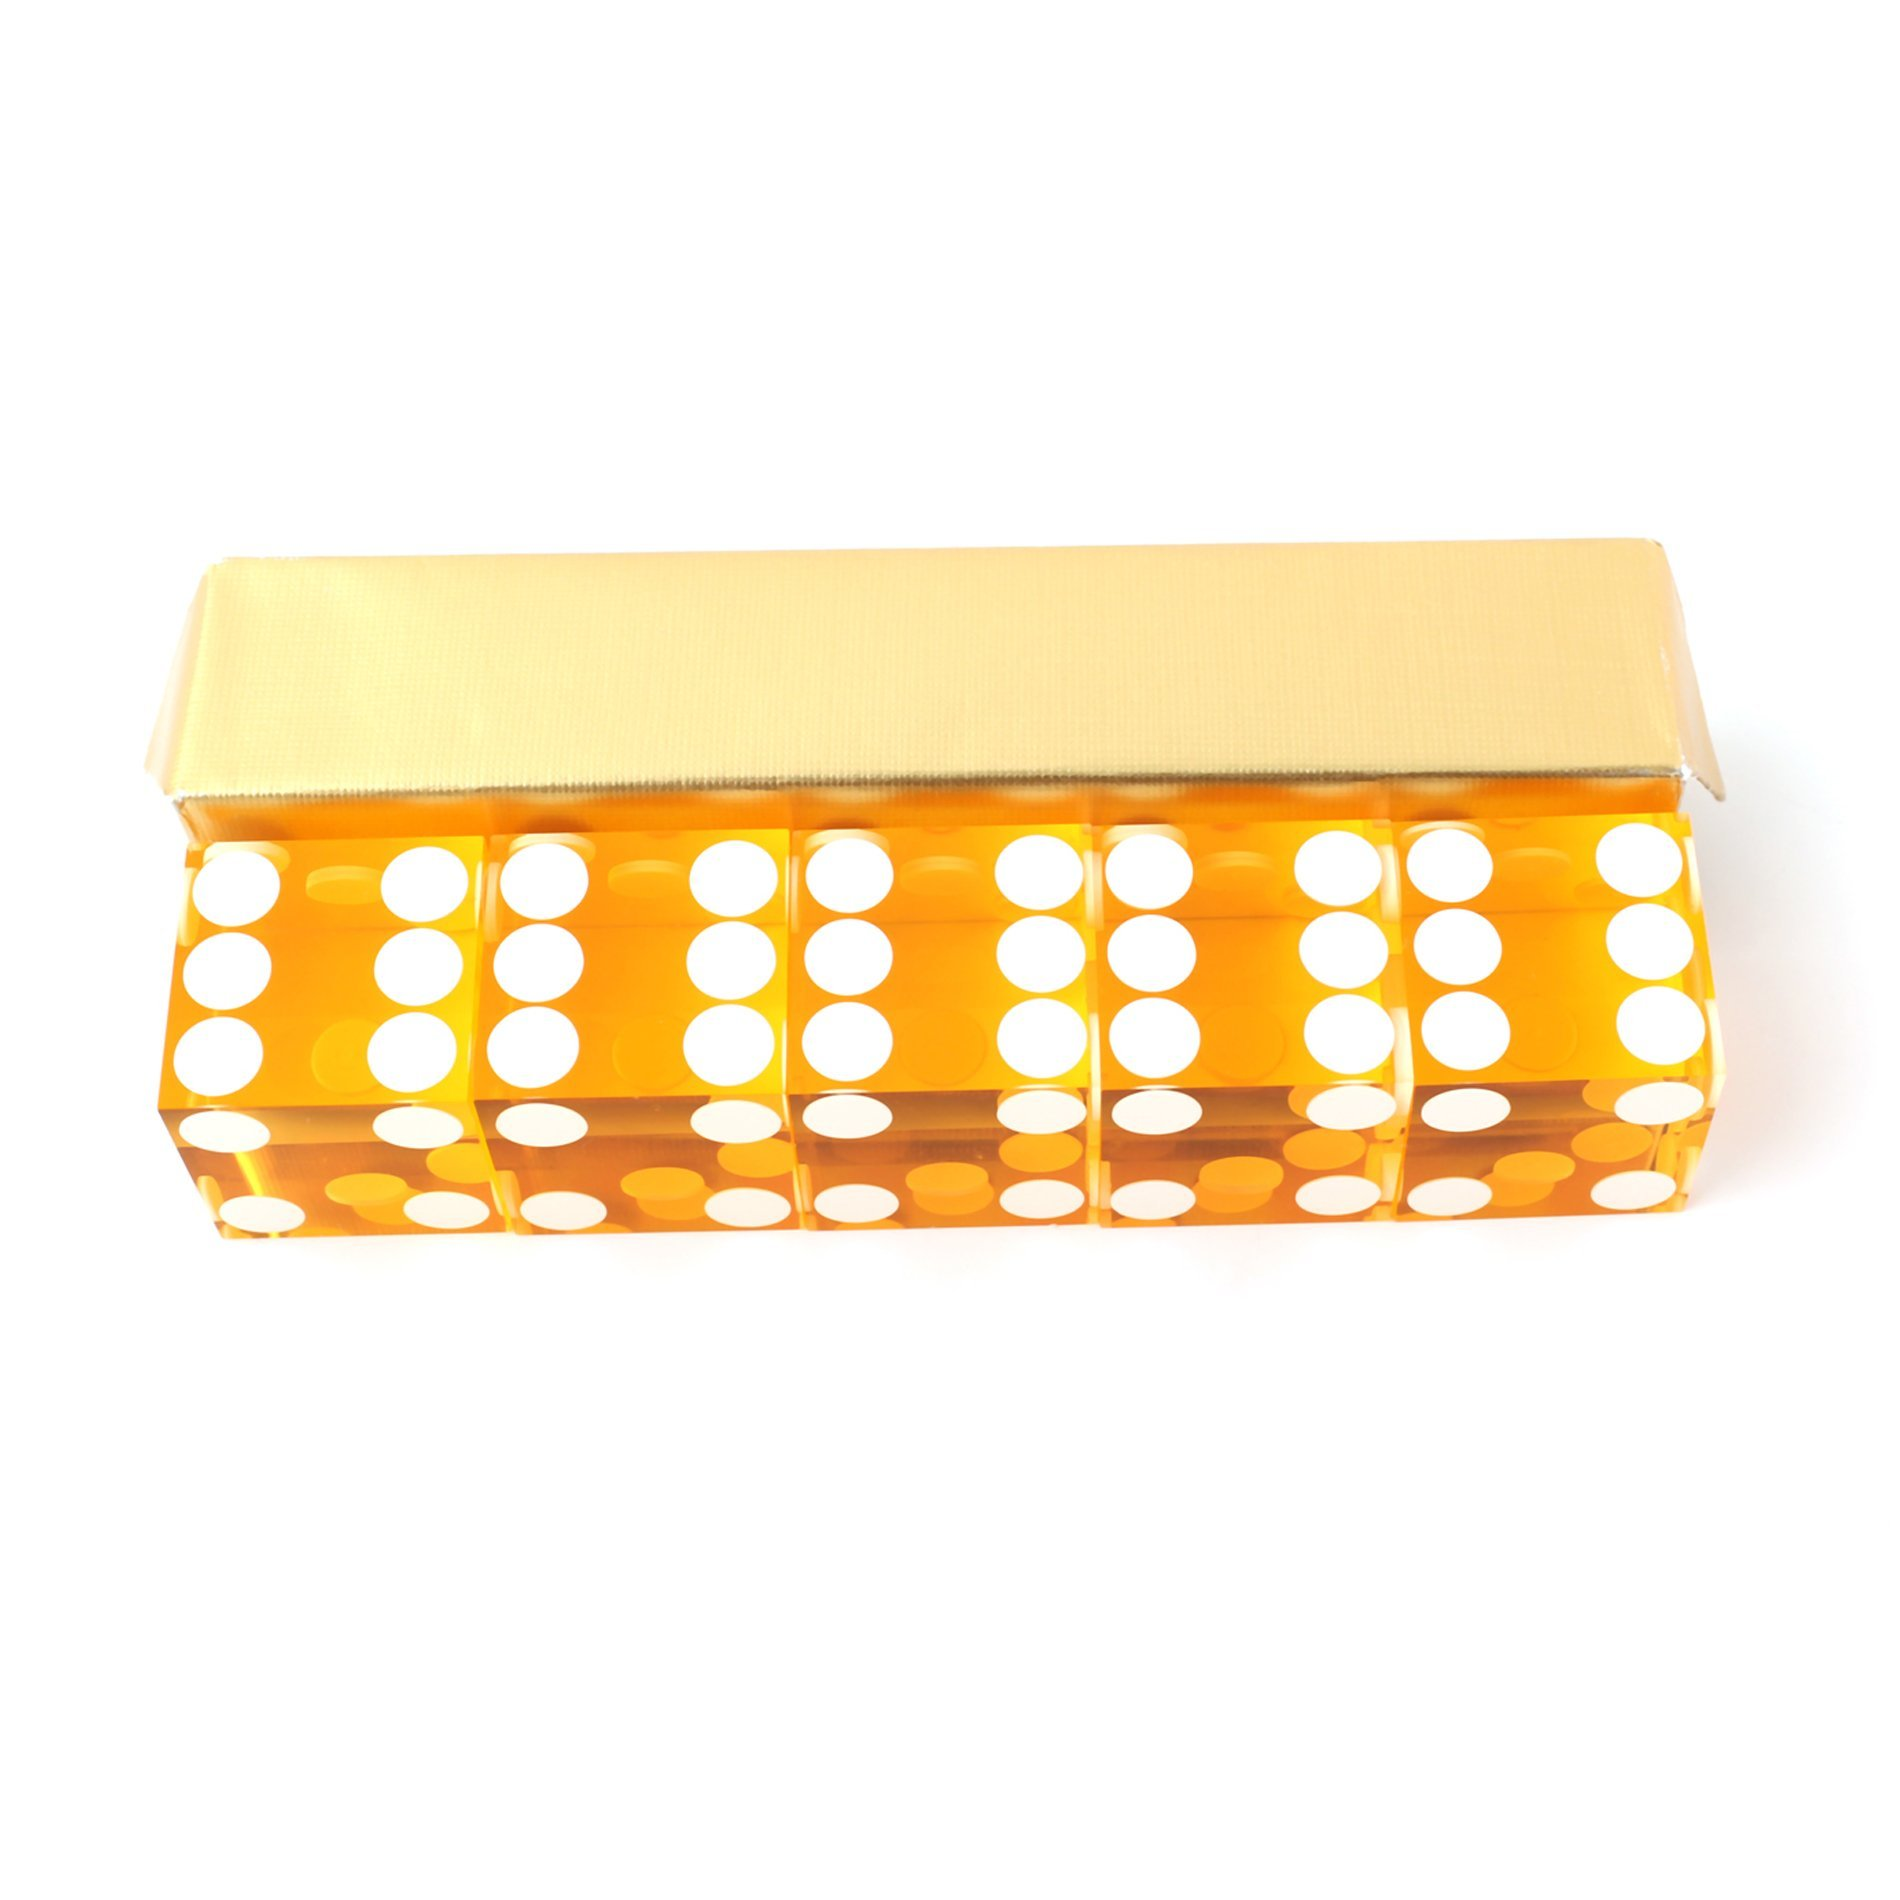 IDS Yellow Casino Craps Dice 19mm Grade Set of 5 Razor Edge Stick